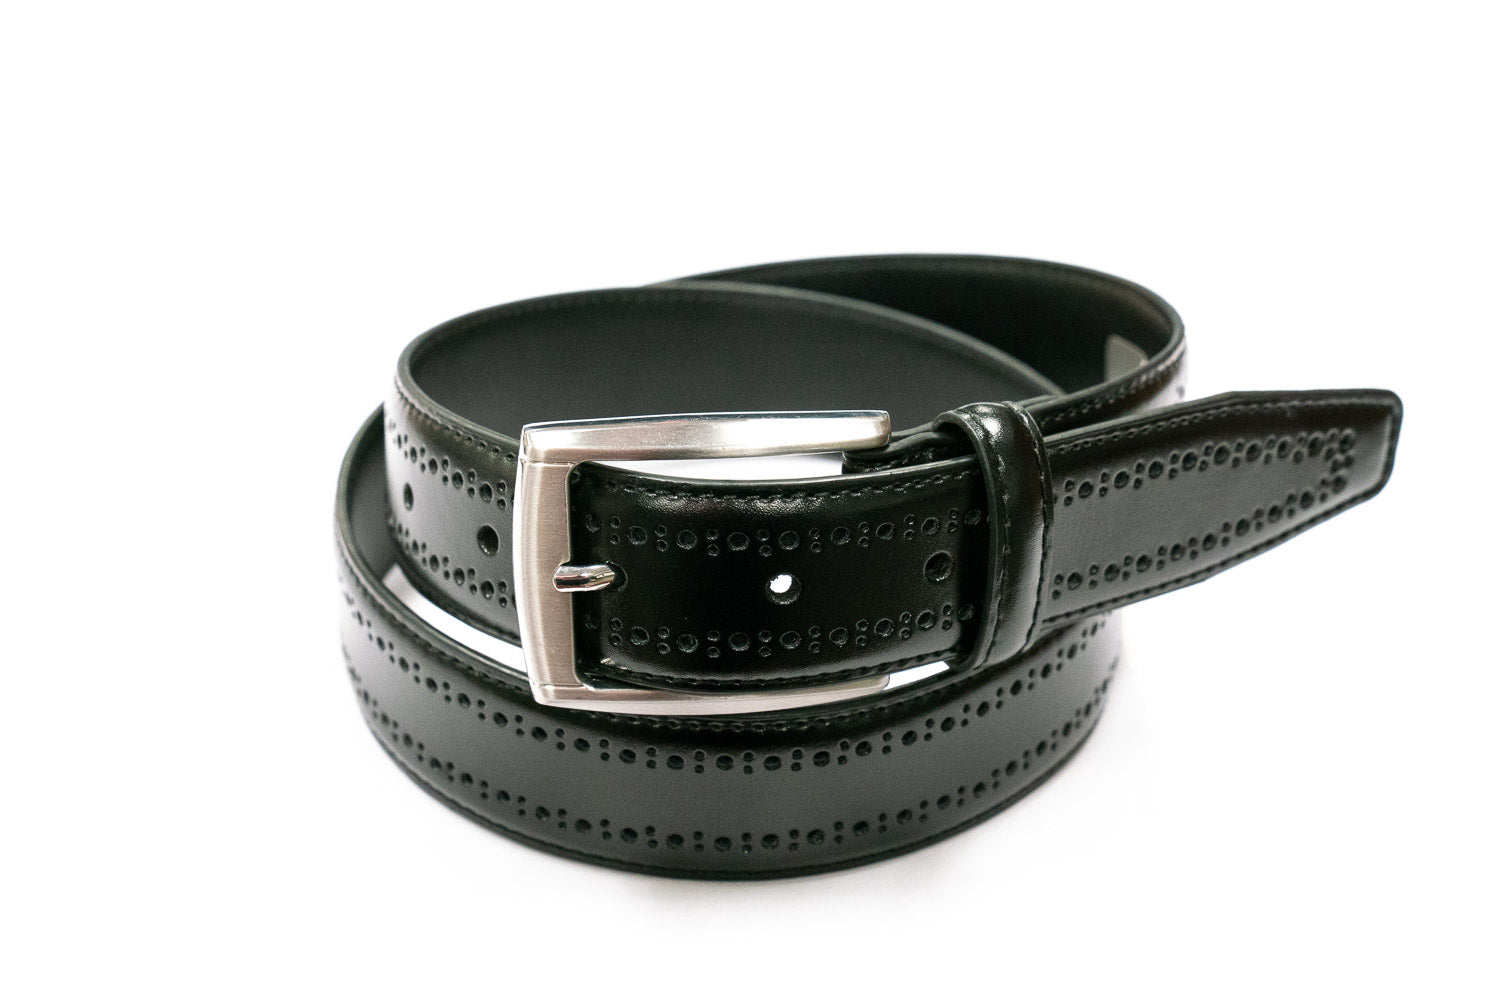 Perforated Black Leather Dress Belt - Rainwater's Men's Clothing and Tuxedo Rental